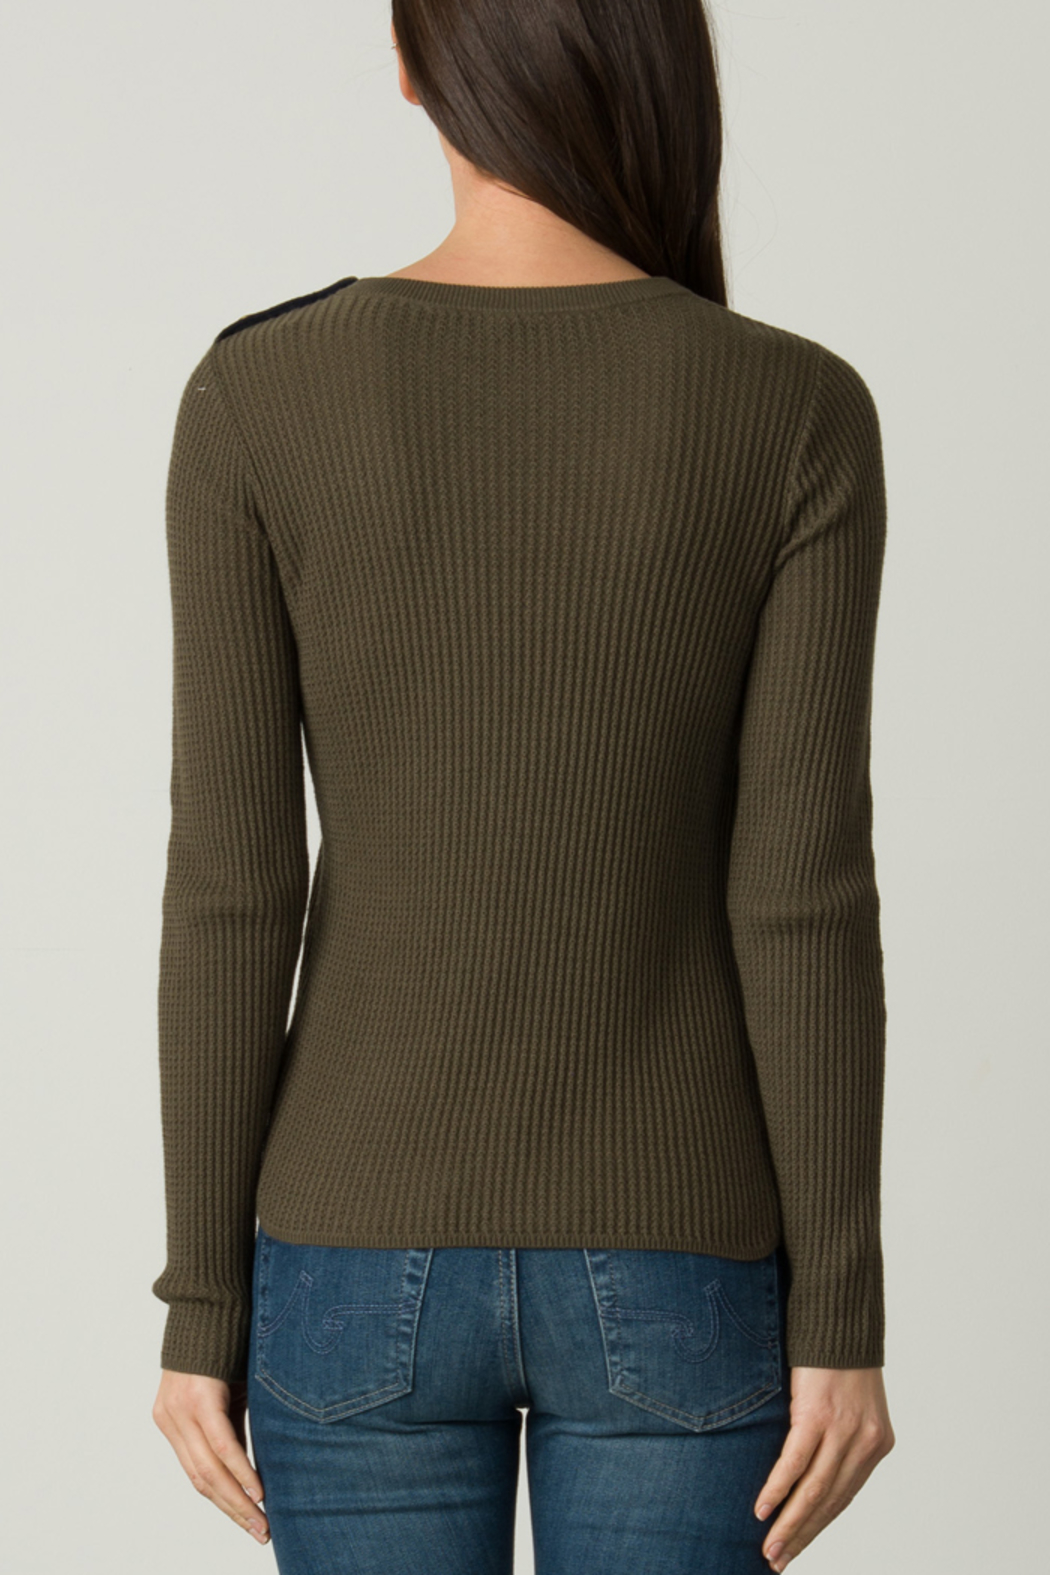 Margaret O'Leary OFFICER BUTTON PULLOVER - Side Cropped Image